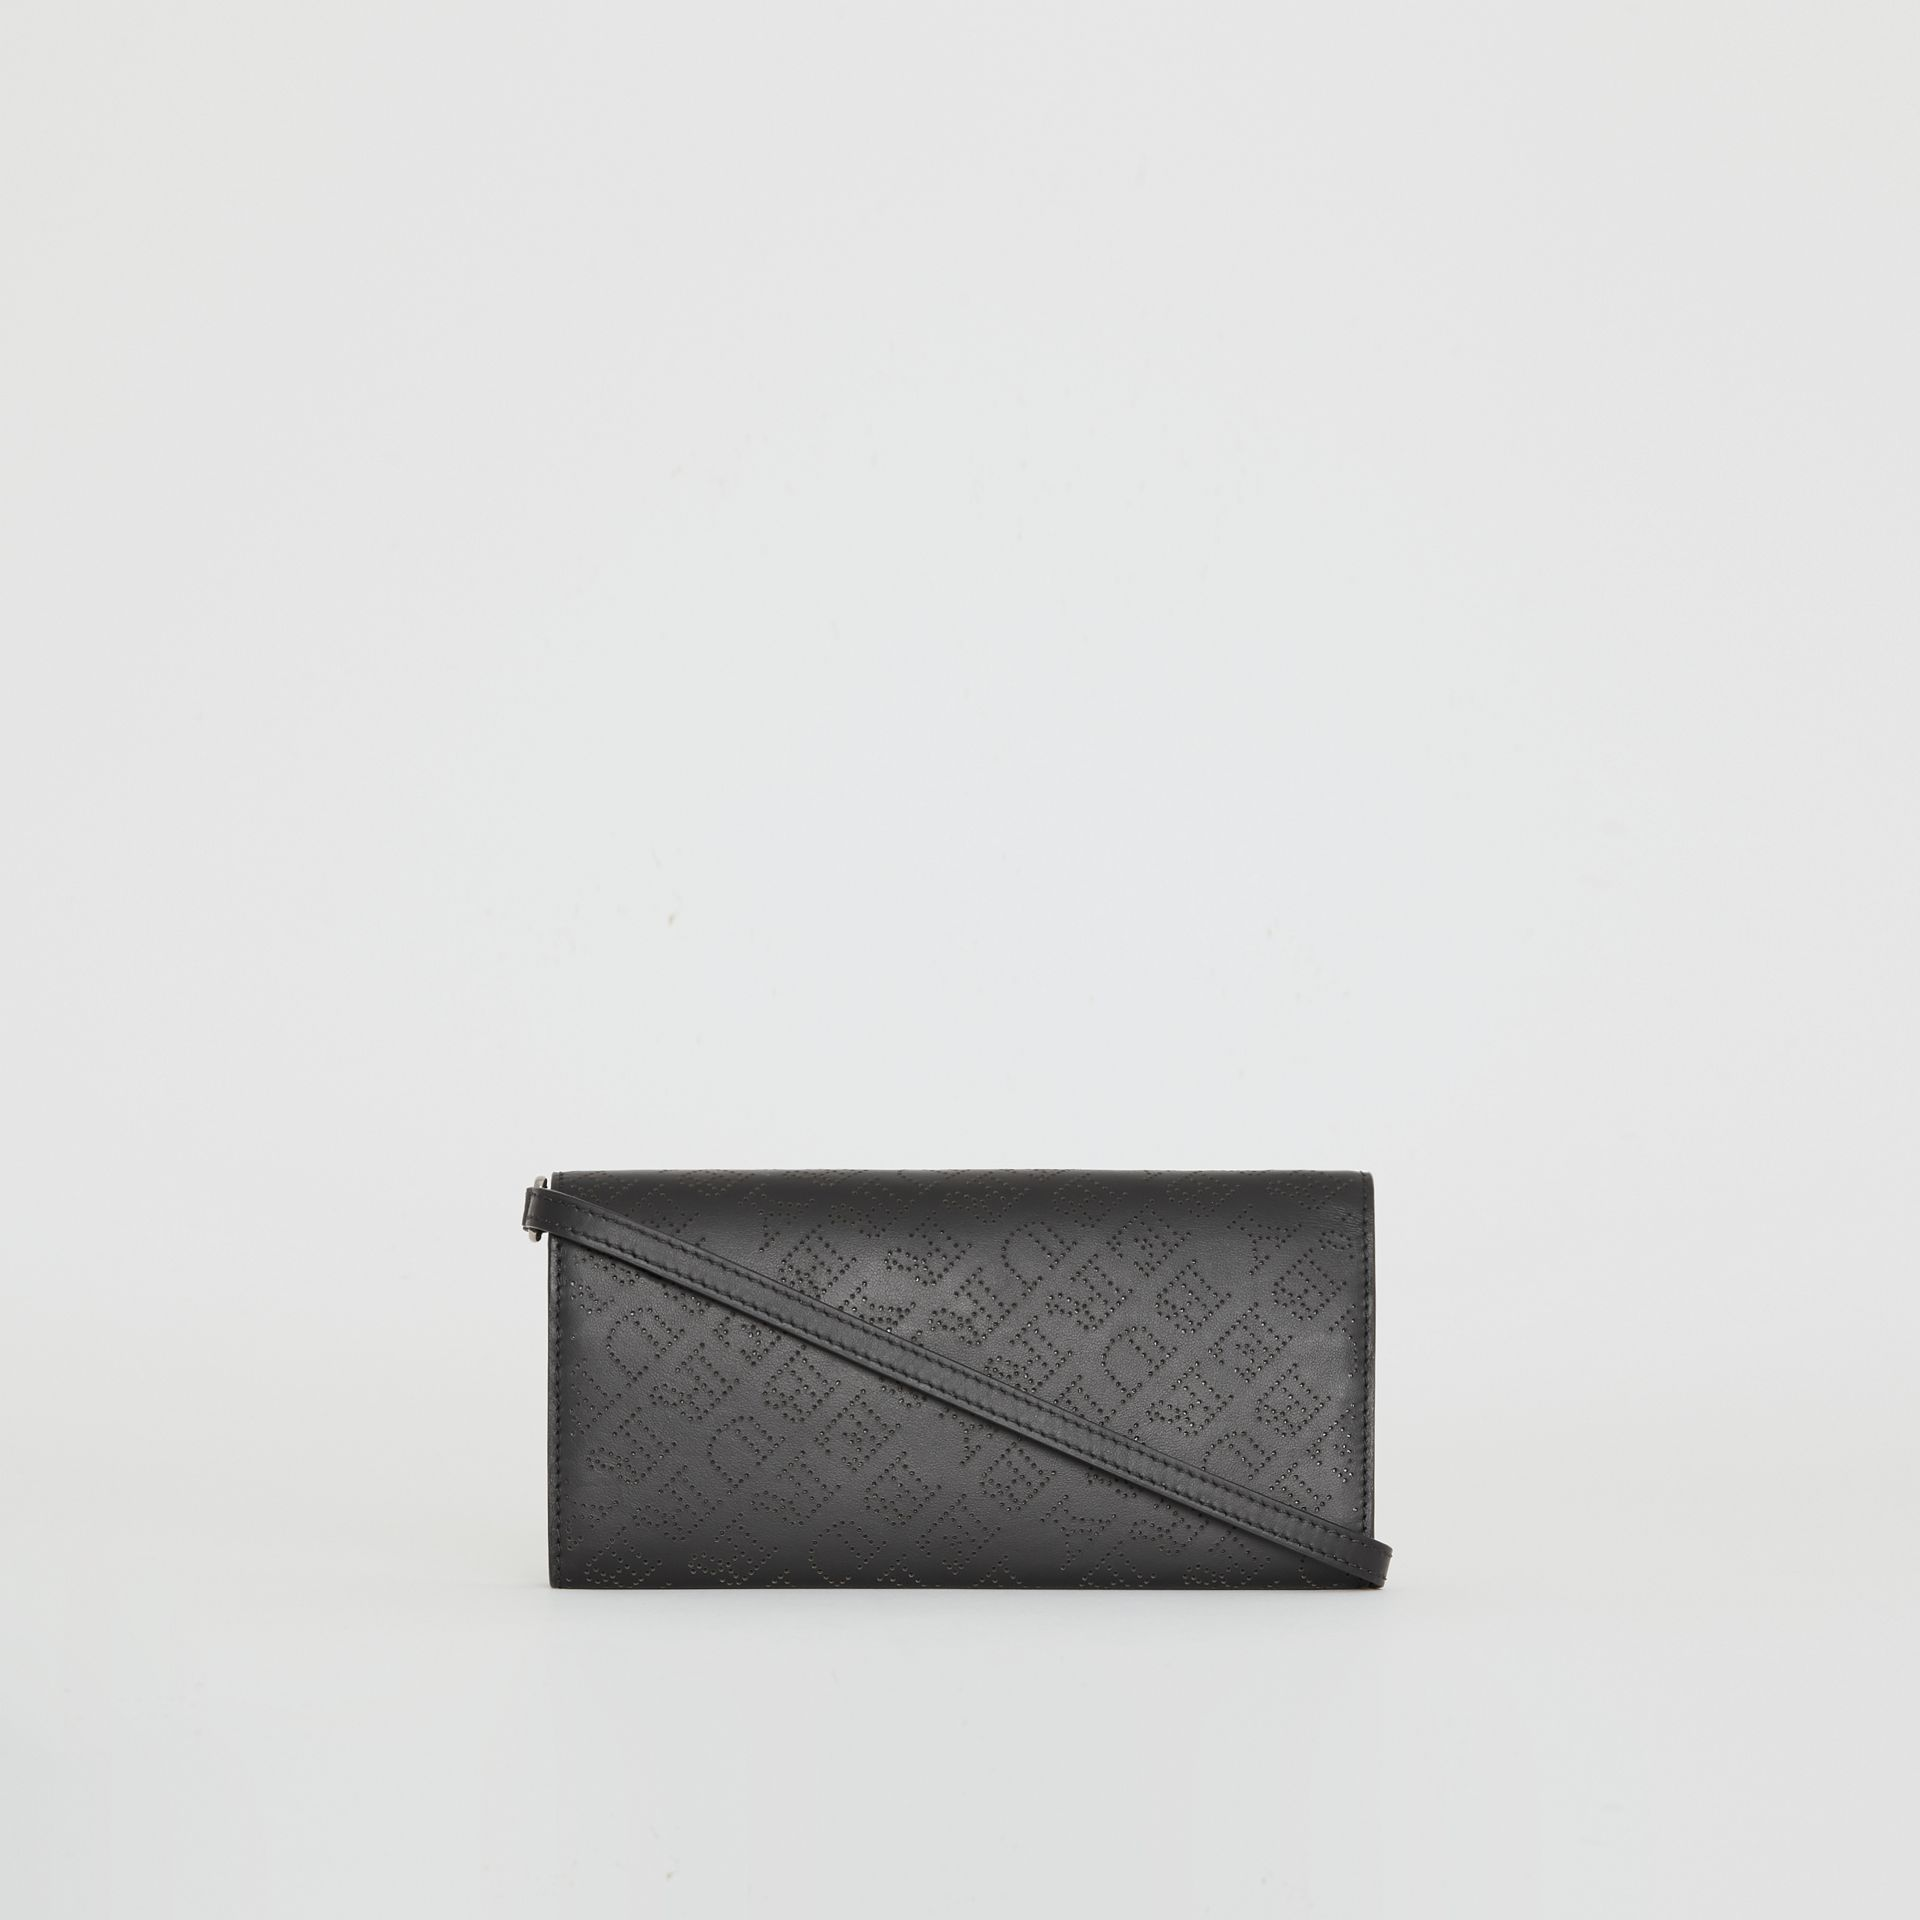 Perforated Logo Leather Wallet with Detachable Strap in Black - Women | Burberry - gallery image 7